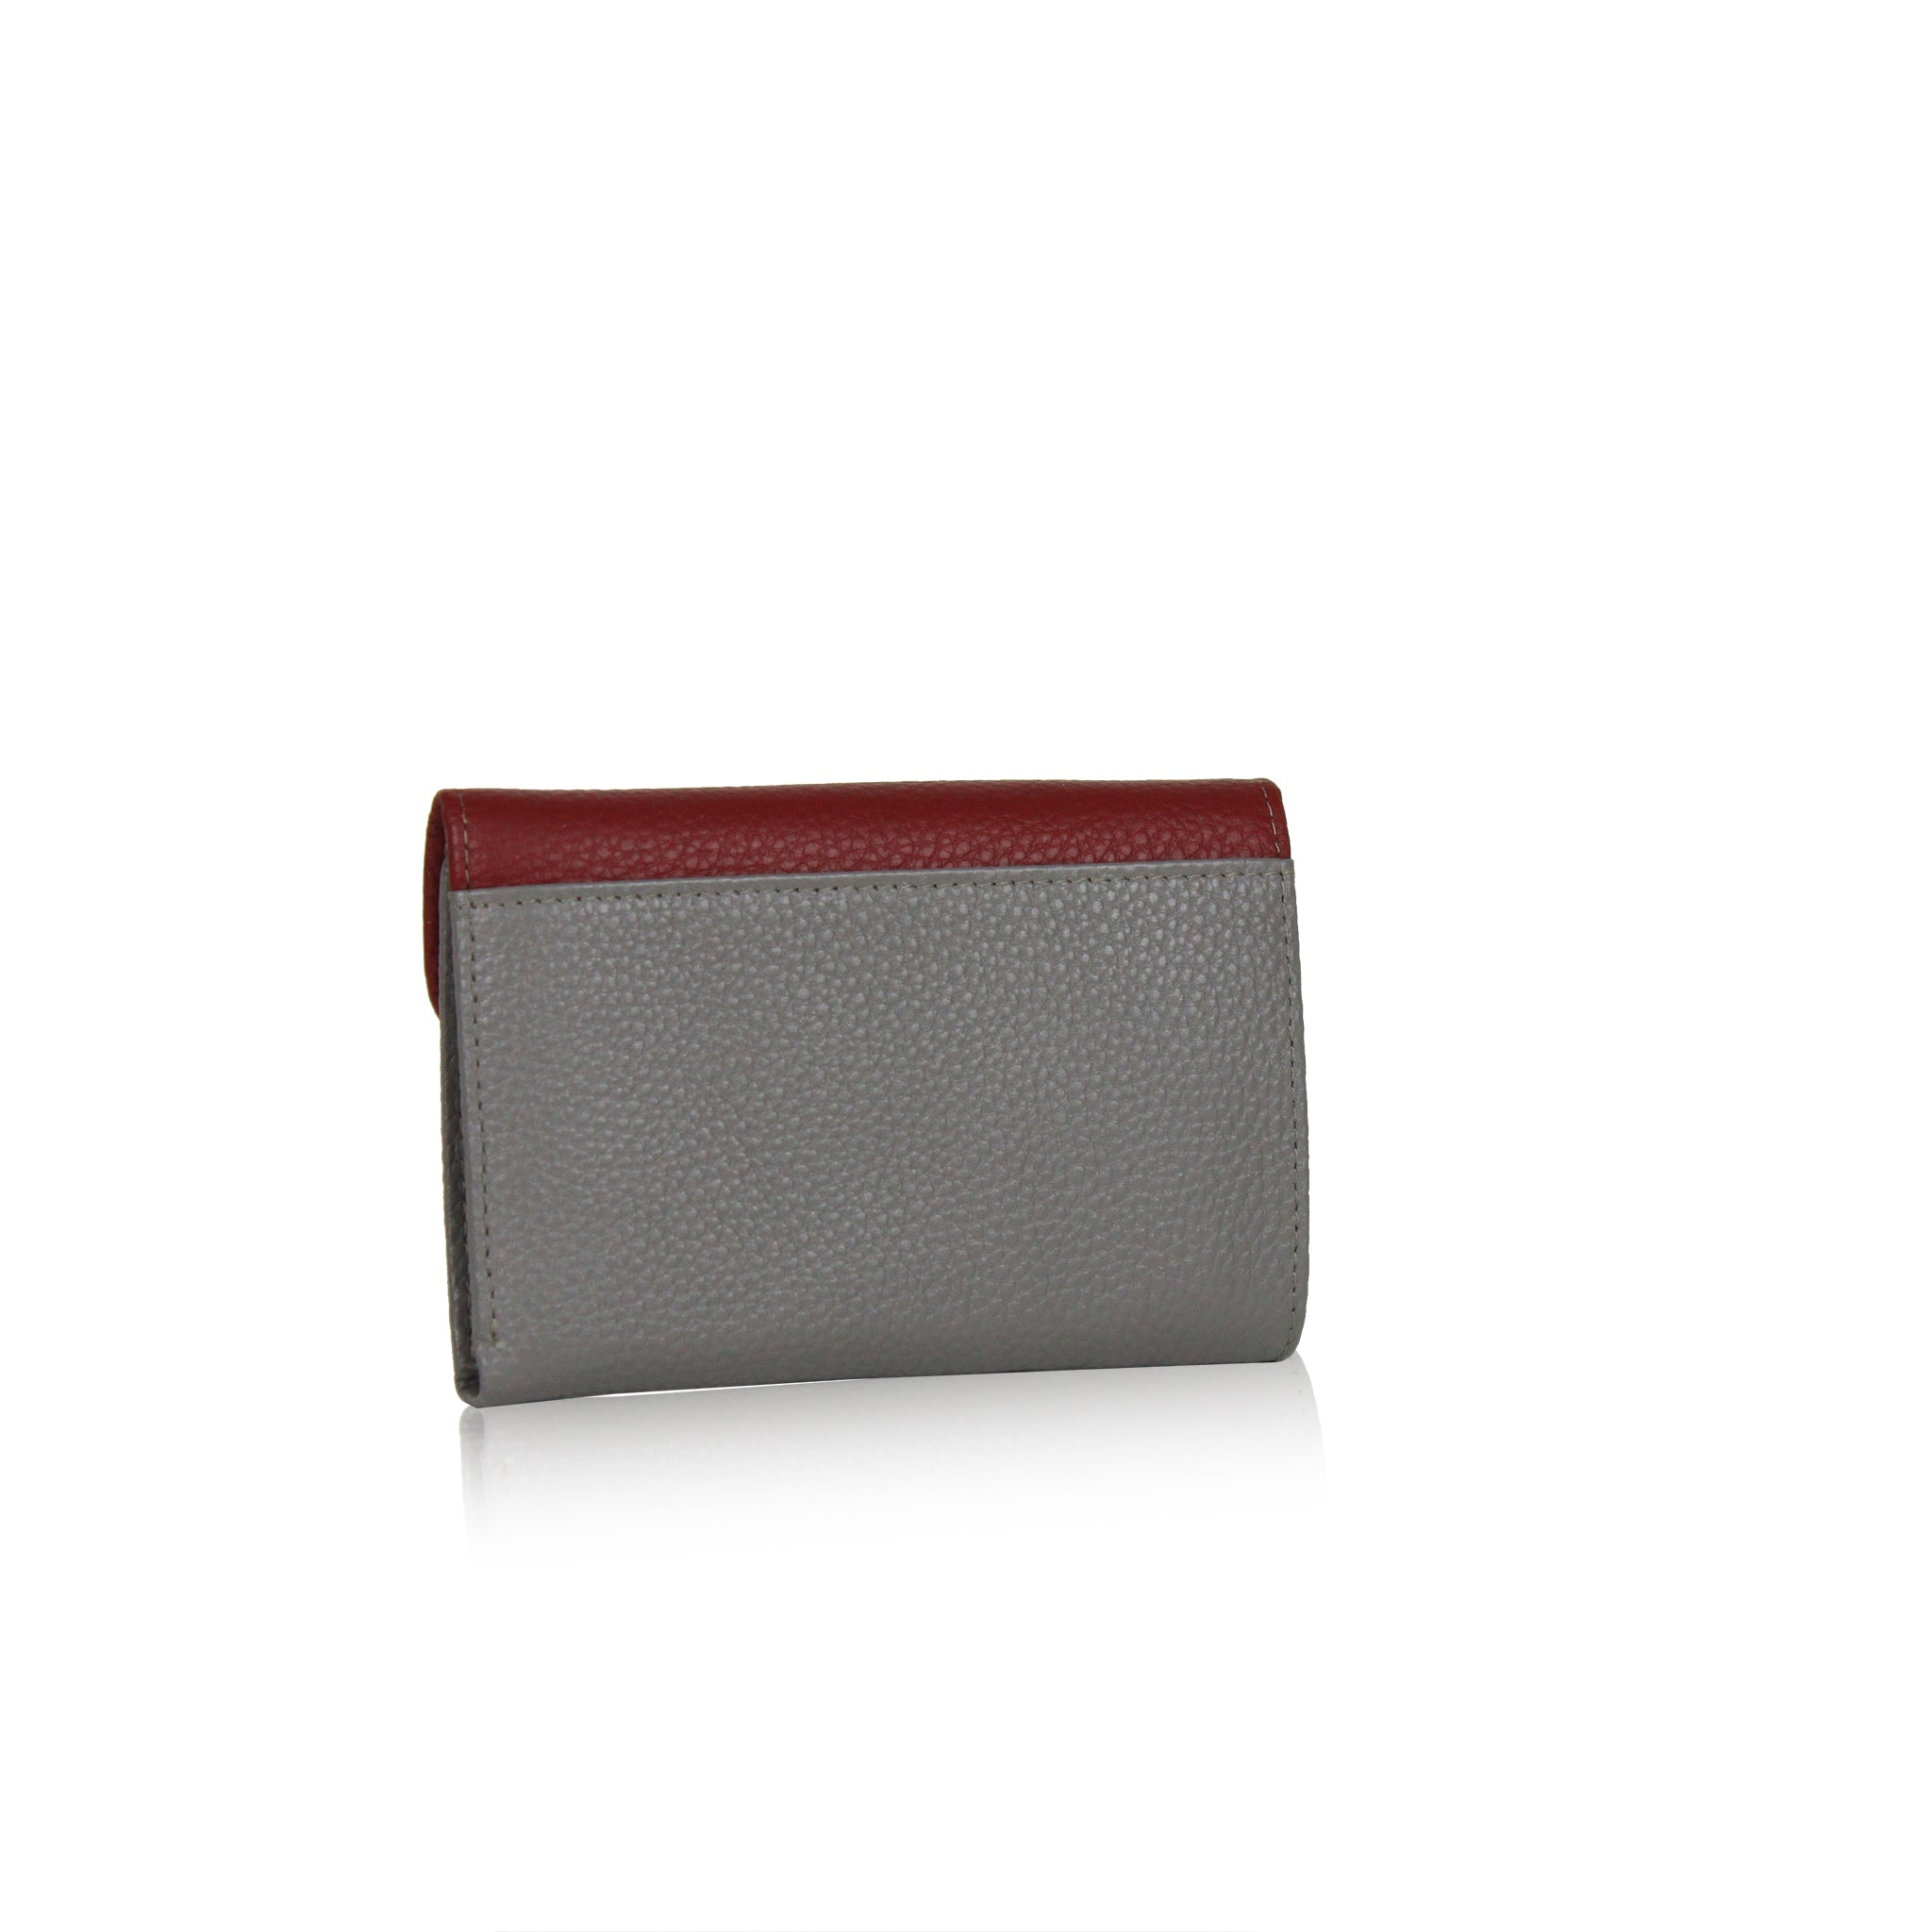 Calf Leather 2 tone Wallet - Red